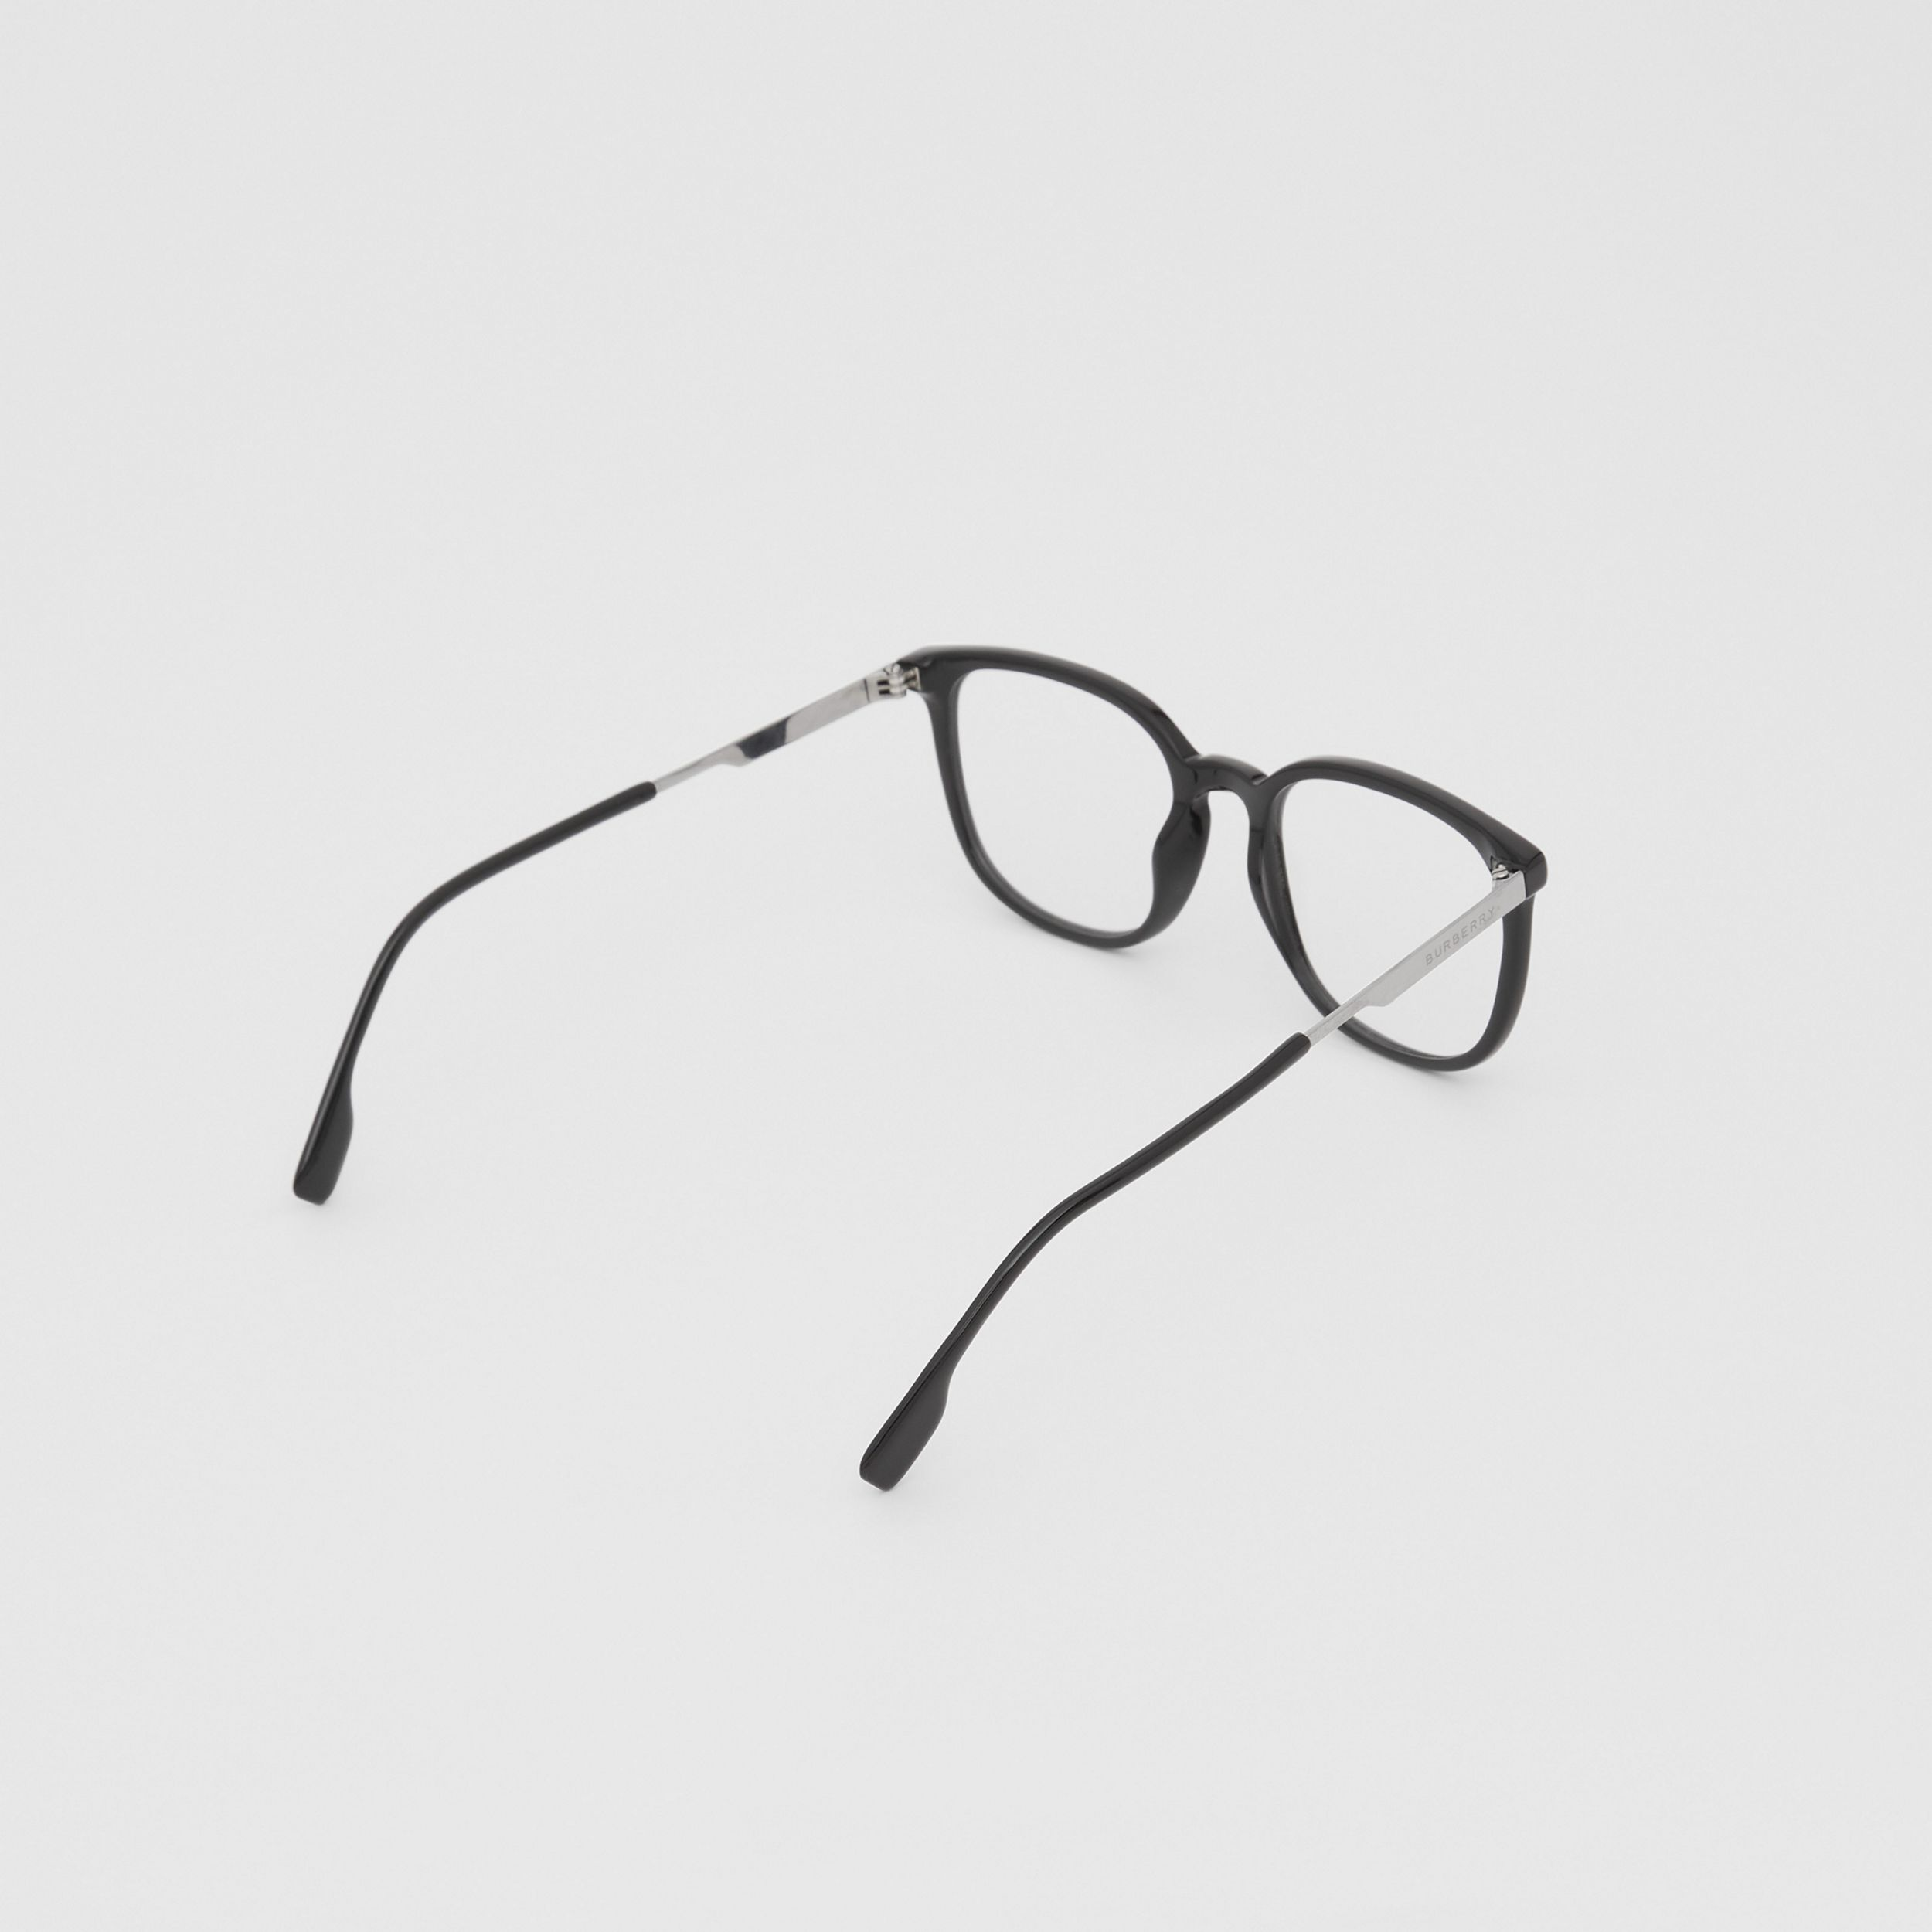 Square Optical Frames in Black | Burberry - 4